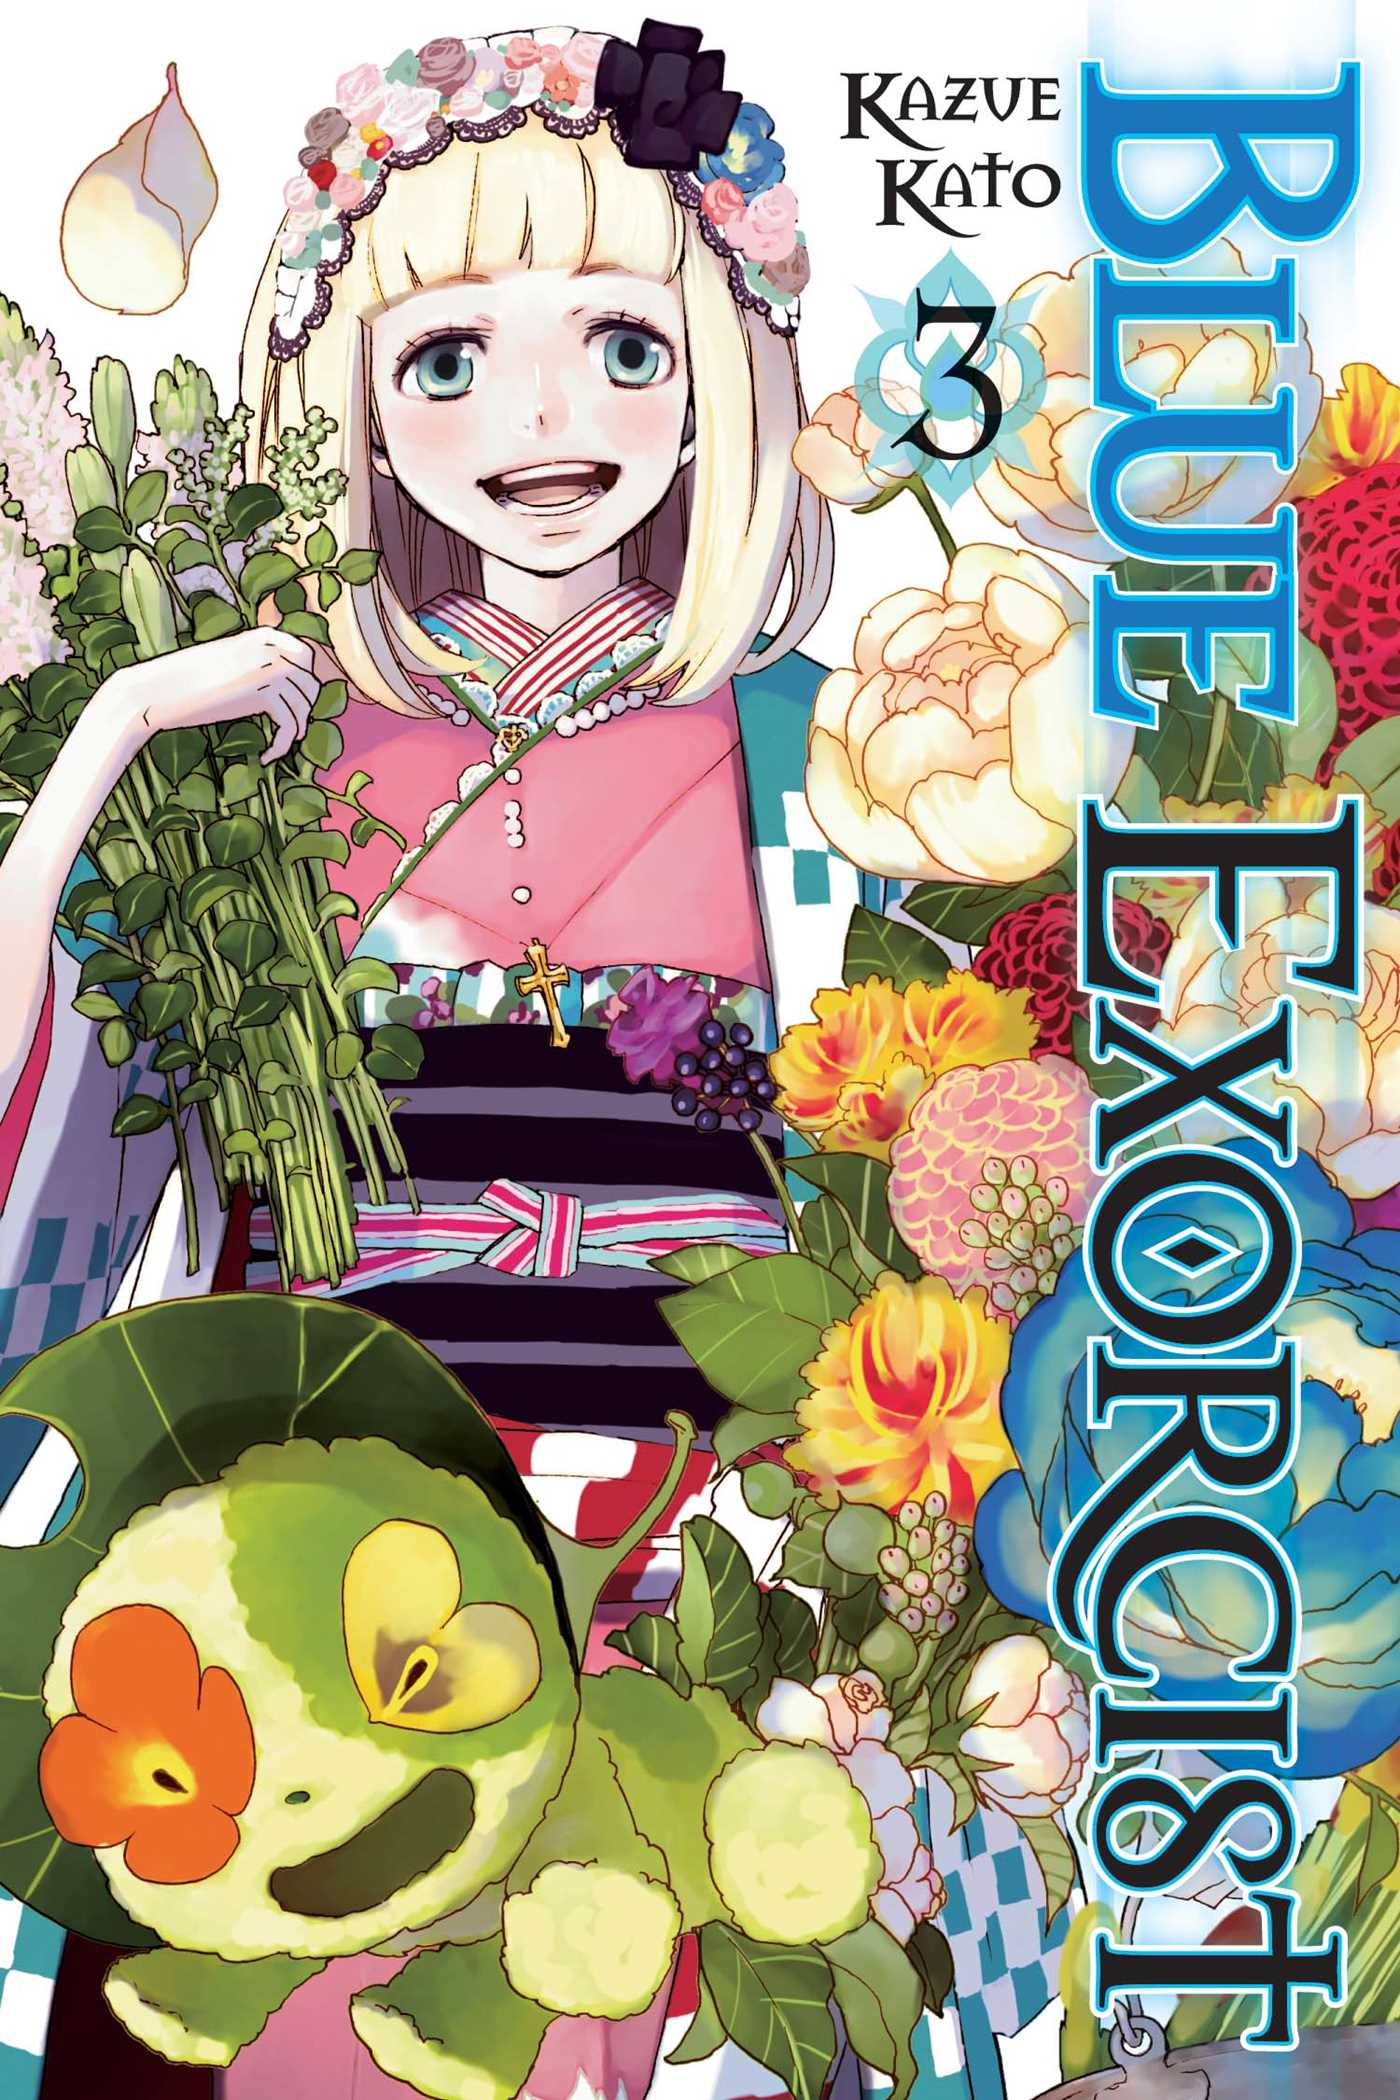 Blue Exorcist Vol 3 Book By Kazue Kato Official Publisher Page Simon Schuster Uk